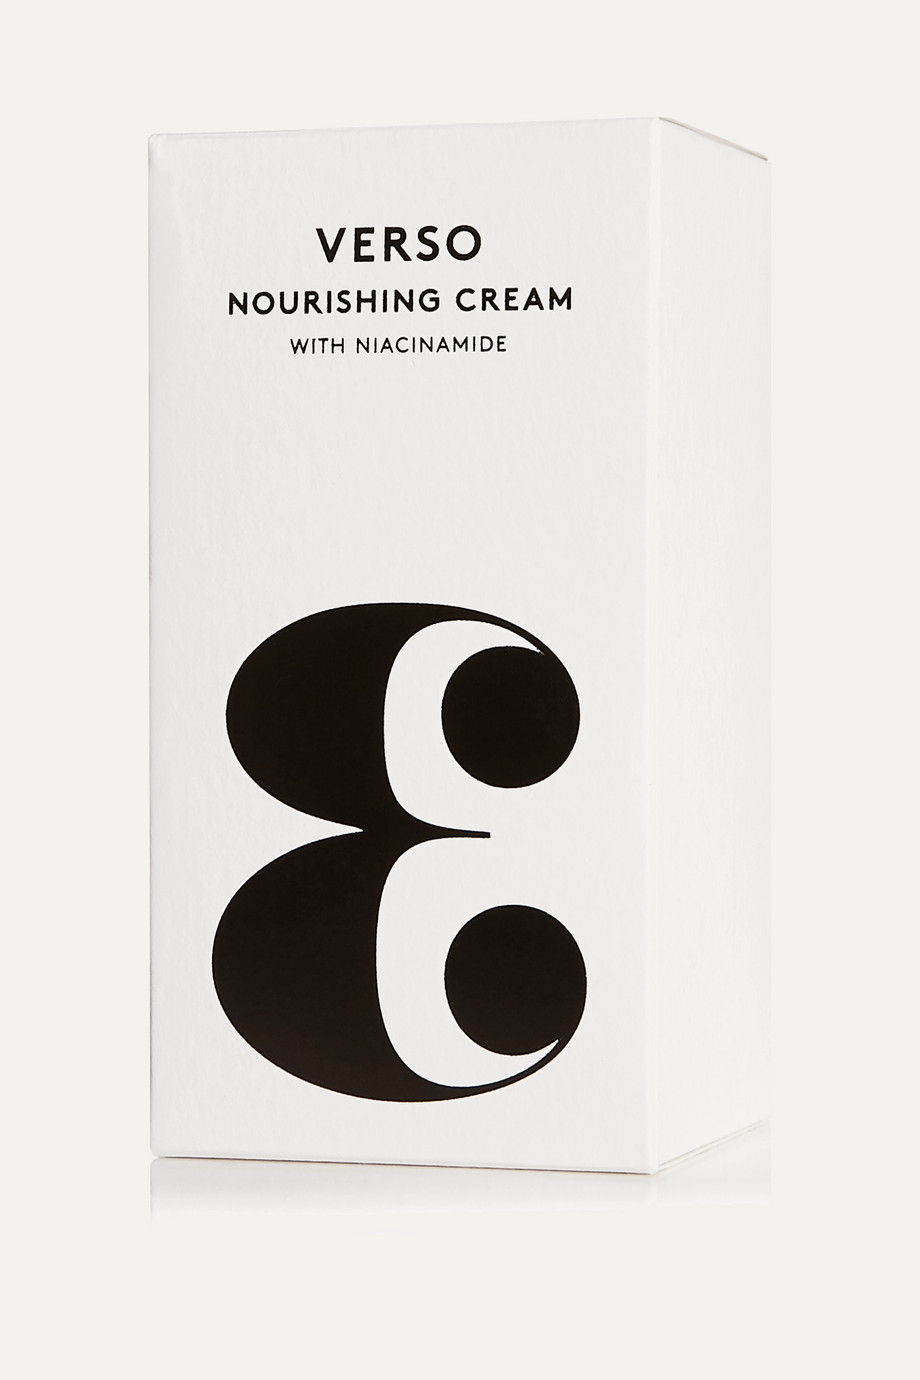 VERSO Nourishing Cream, 50ml